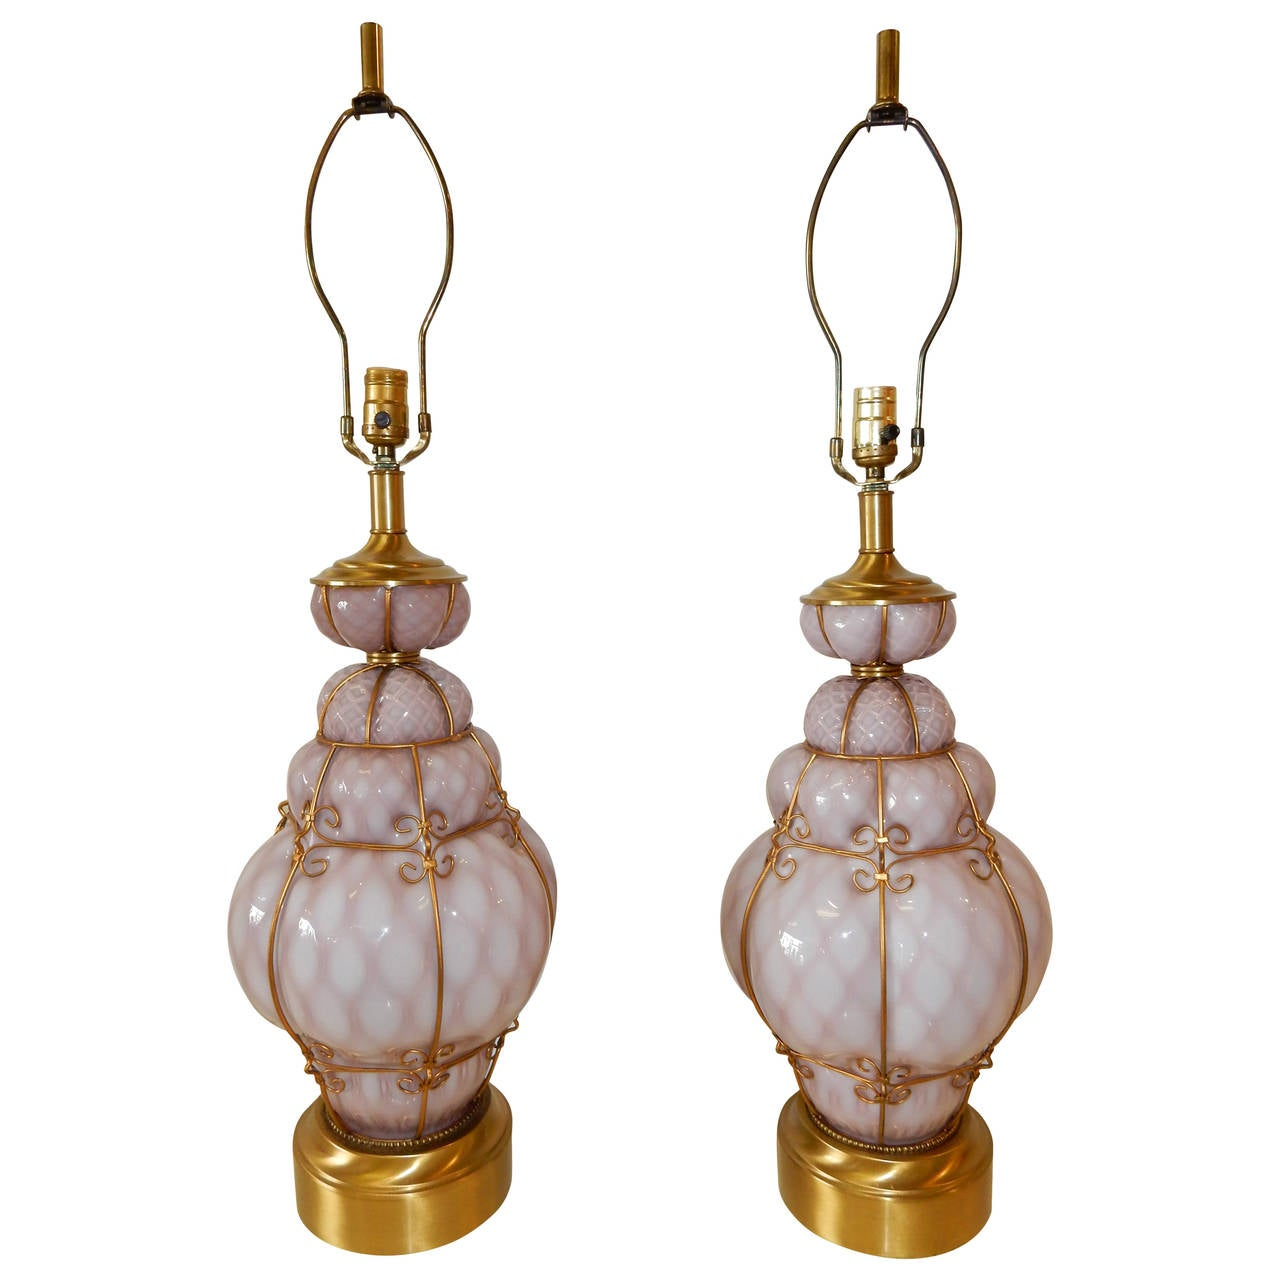 Seguso Murano Italy Bubble Cage Art Glass Table Lamps In